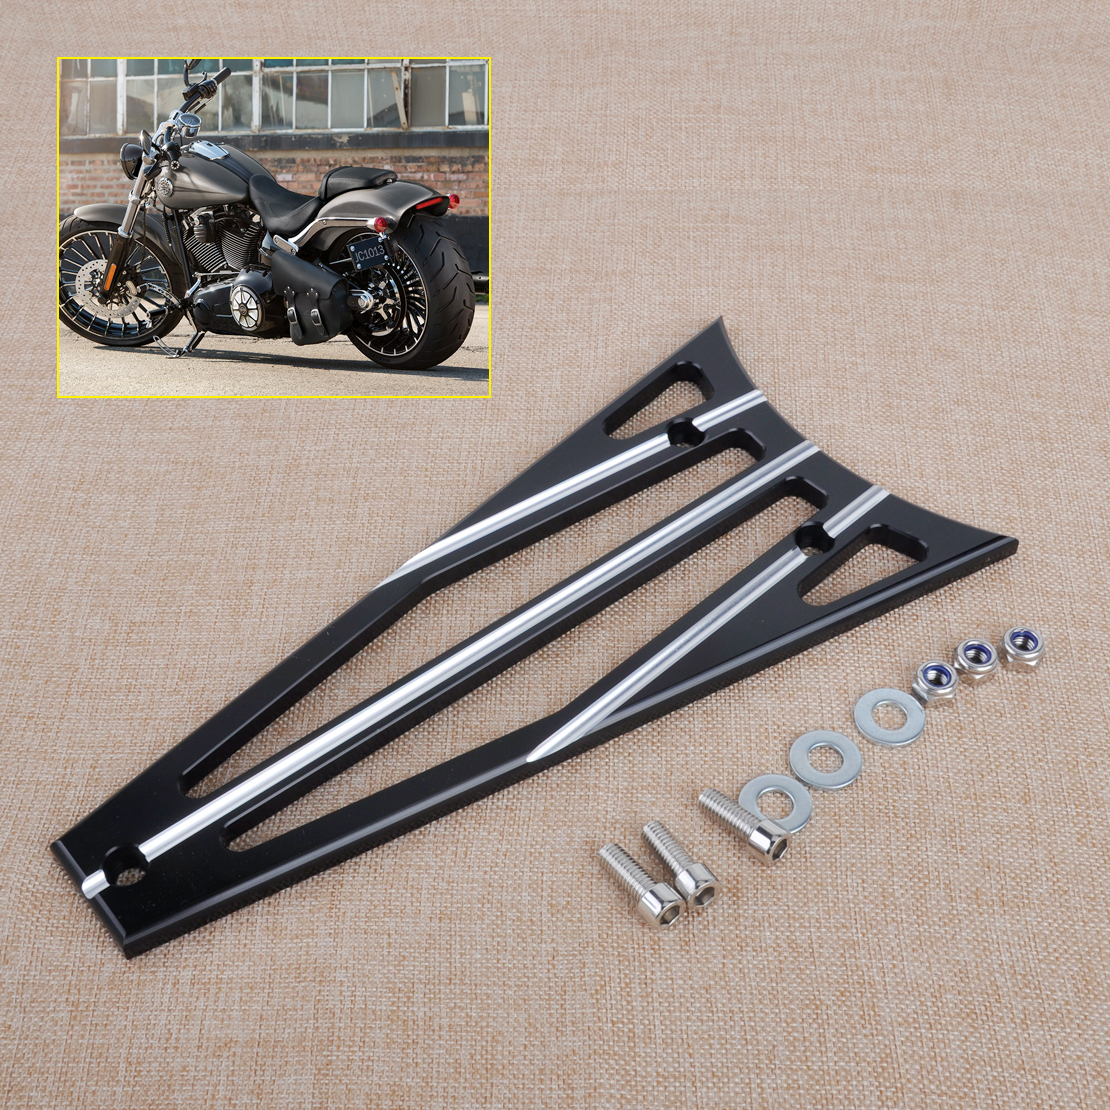 CITALL 3 Columns Billet Deep Cut Frame Grill For Harley Electra Glide/Road King/Road Glide/Street Glide 2009 2010 2011 2012 2013 brand new mid frame air deflector trims for harley cvo limited road king electra glide street electra tri glide flhx 2009 2016